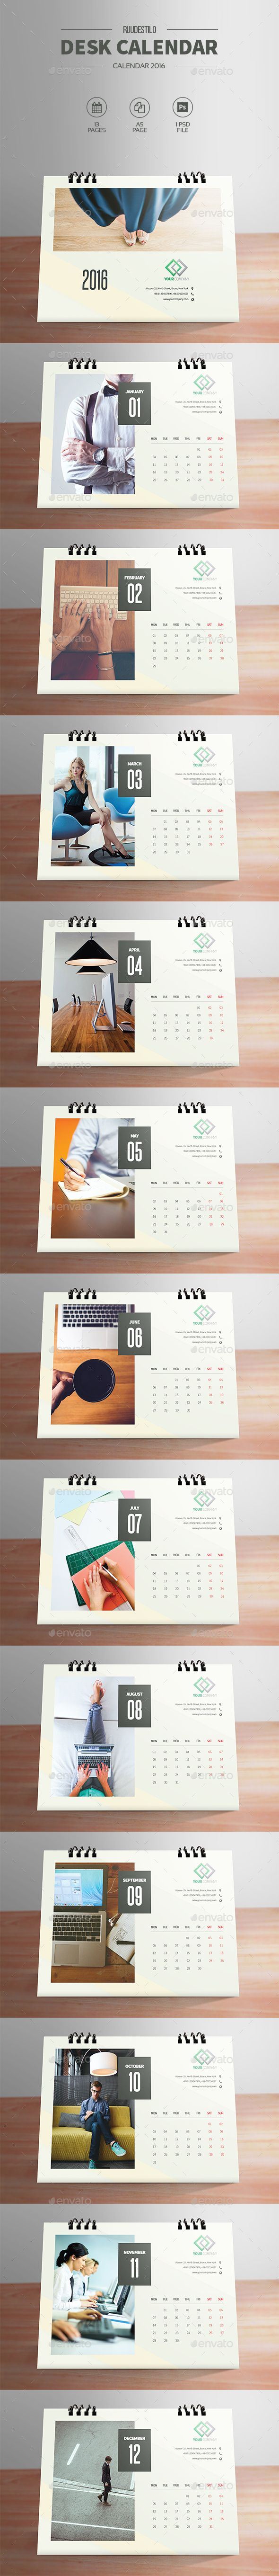 Pin By Best Graphic Design On Calendar Templates Pinterest